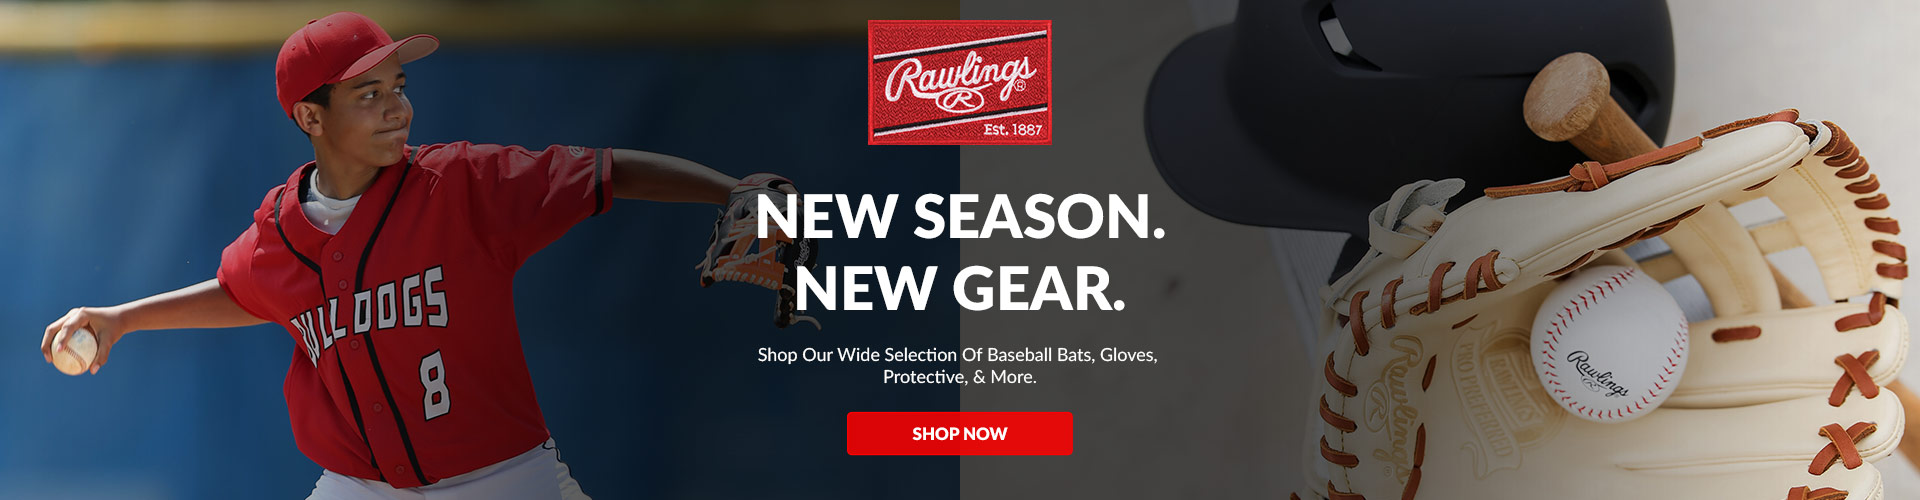 Shop Our Wide Selection Of Rawlings Baseball & Softball Bats, Gloves, Helmets, & More Ball Equipment Gear Available For Sale Online and In-Store At Source For Sports Stores Near You.